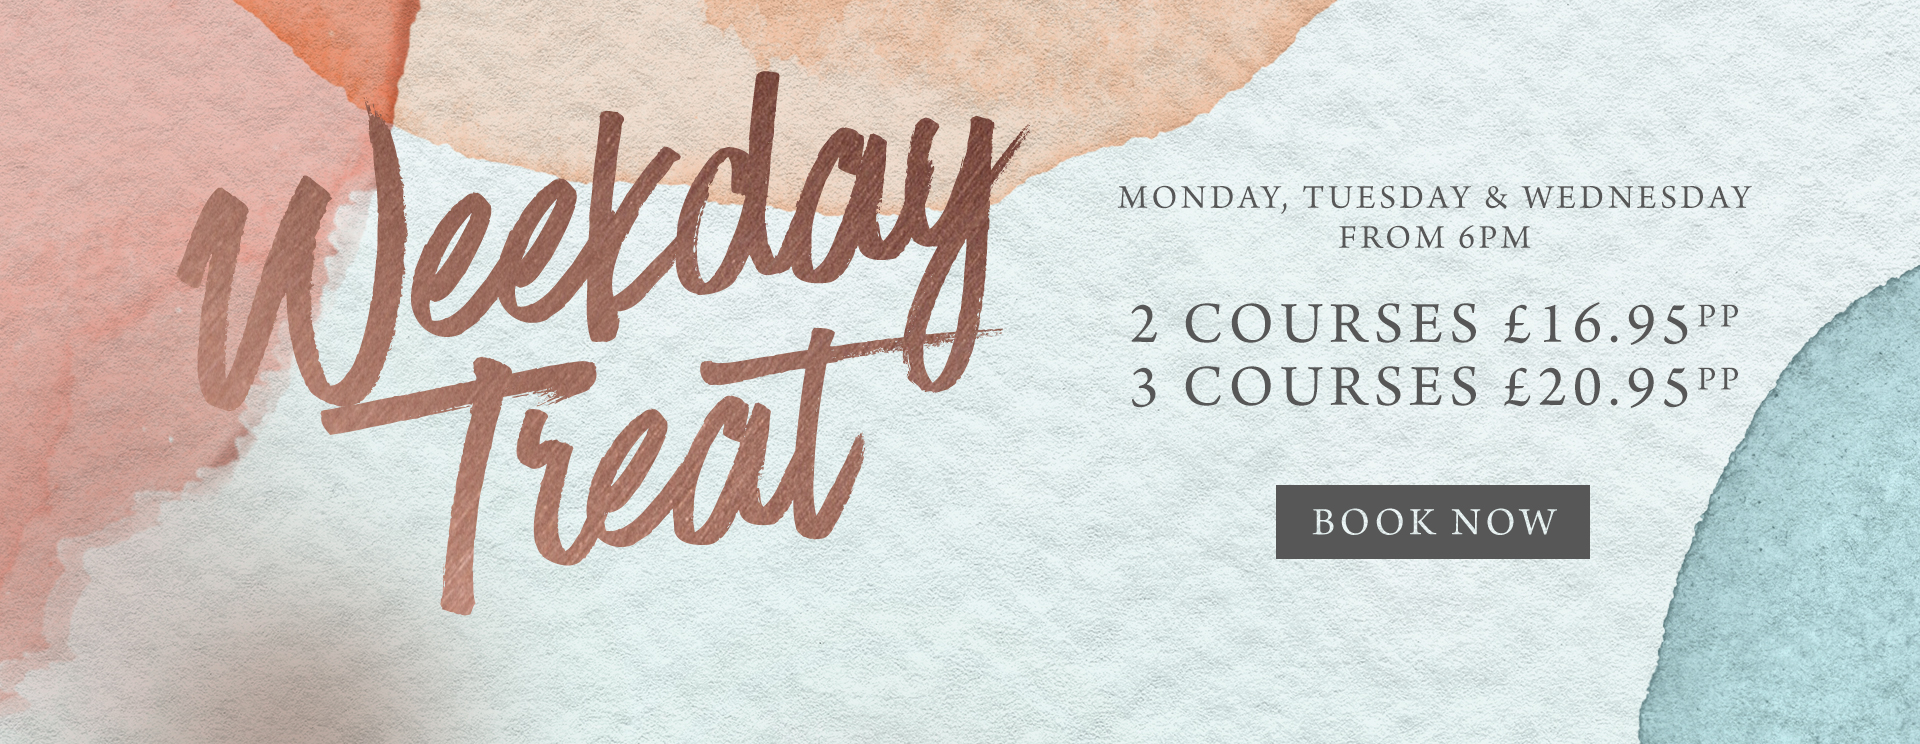 Weekday treat at The Albany - Book now